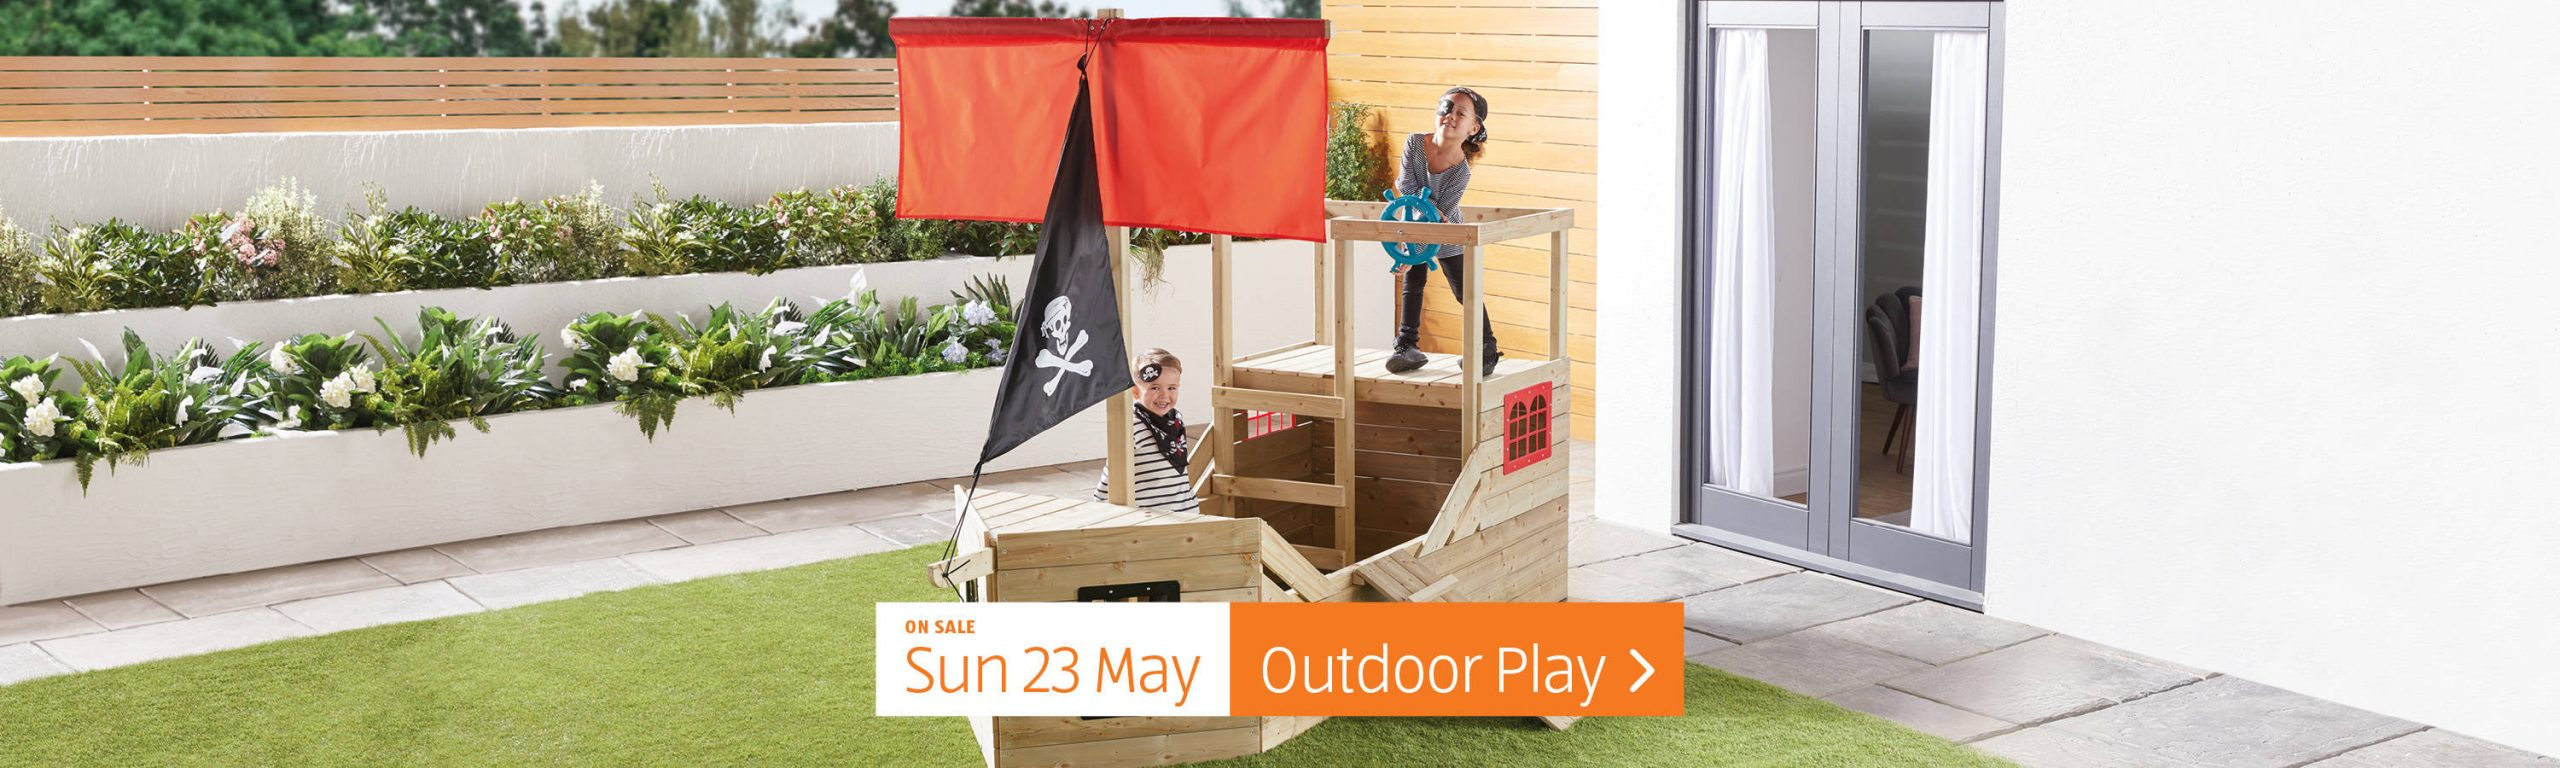 ALDI Sunday Offers Outdoor Play 23rd May 2021